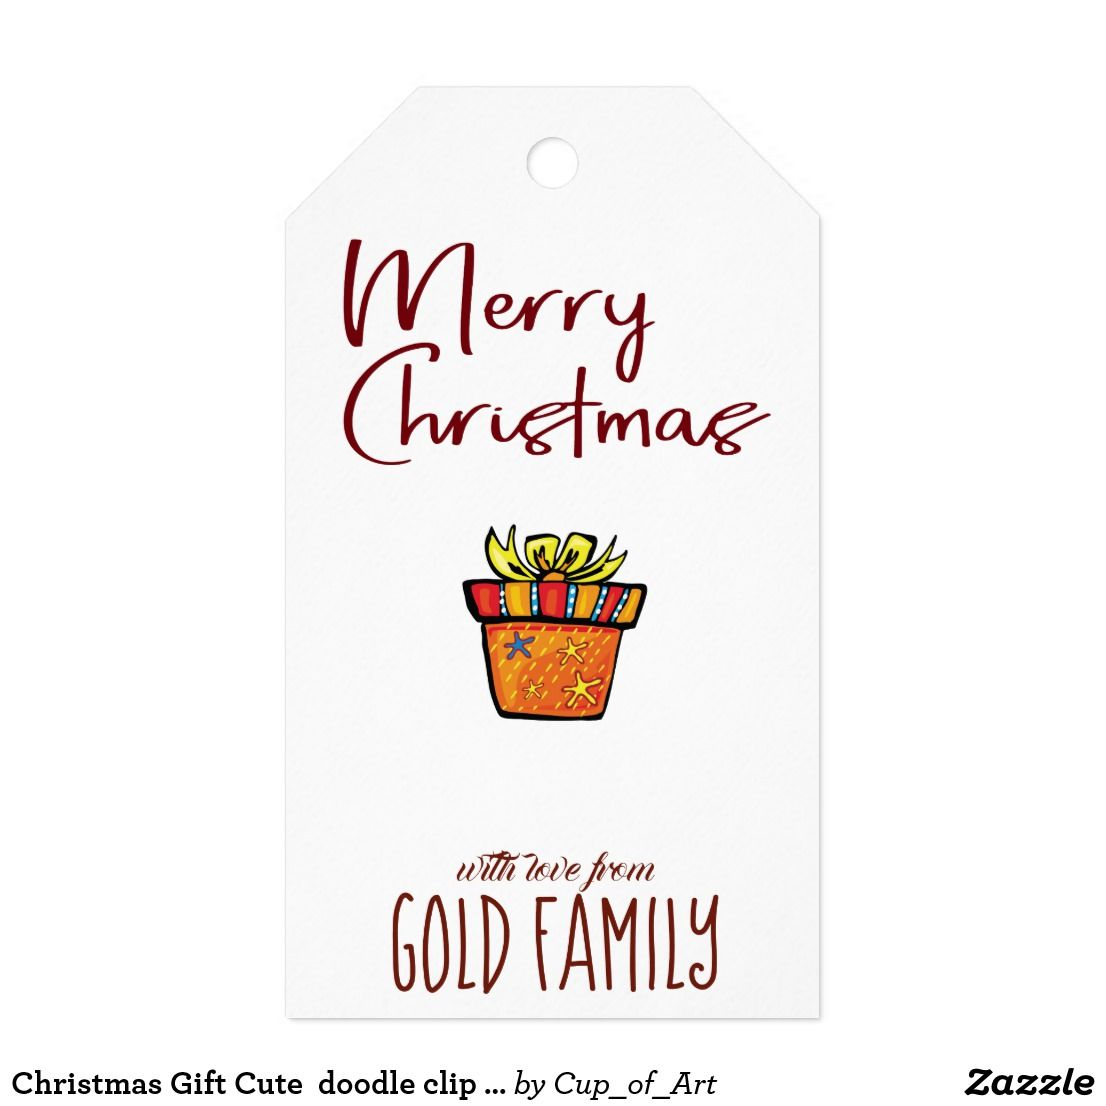 Christmas Gift Cute Doodle Clip Art Design Gifts Gift Tags Zazzle Com Designed Gift Gift Tags Family Christmas Gifts